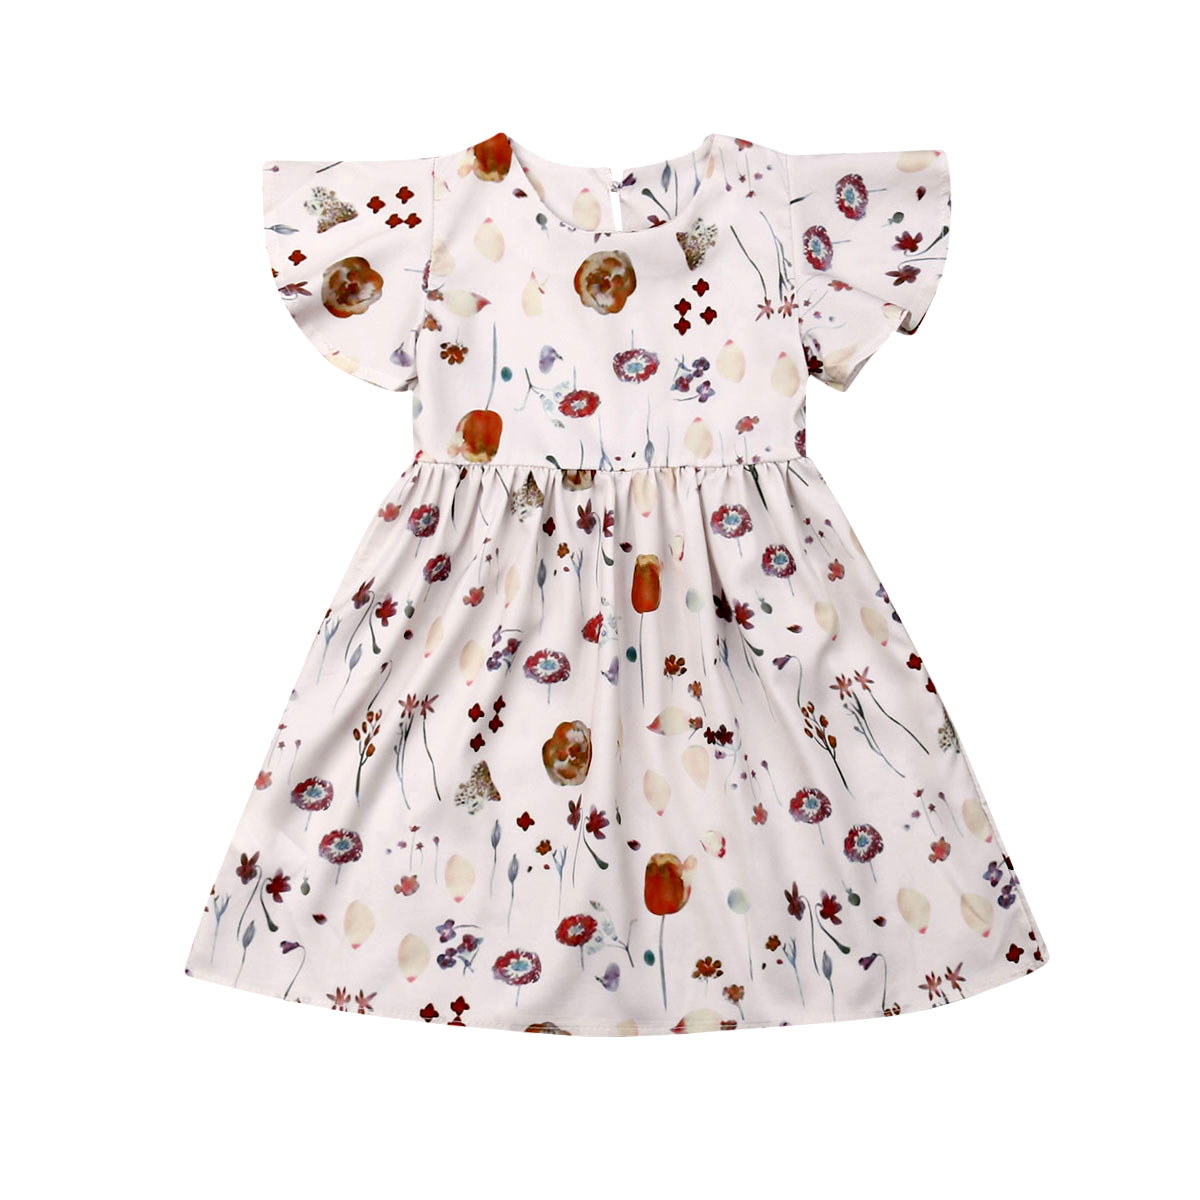 New Toddler Kids Baby Girls Floral Outfit Clothes Party Princess Dress Casual(China)